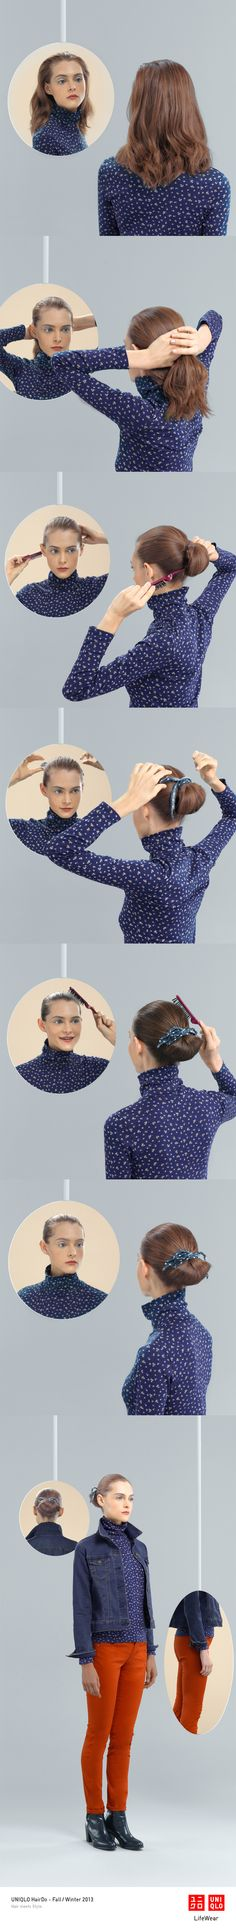 """""""THE CHIGNON"""" : Our denim jacket and ultra stretch jeans make this look complete. Click the image for DIY instructions! #Chignon #Hair #Hairstyle #DIY #UNIQLO"""